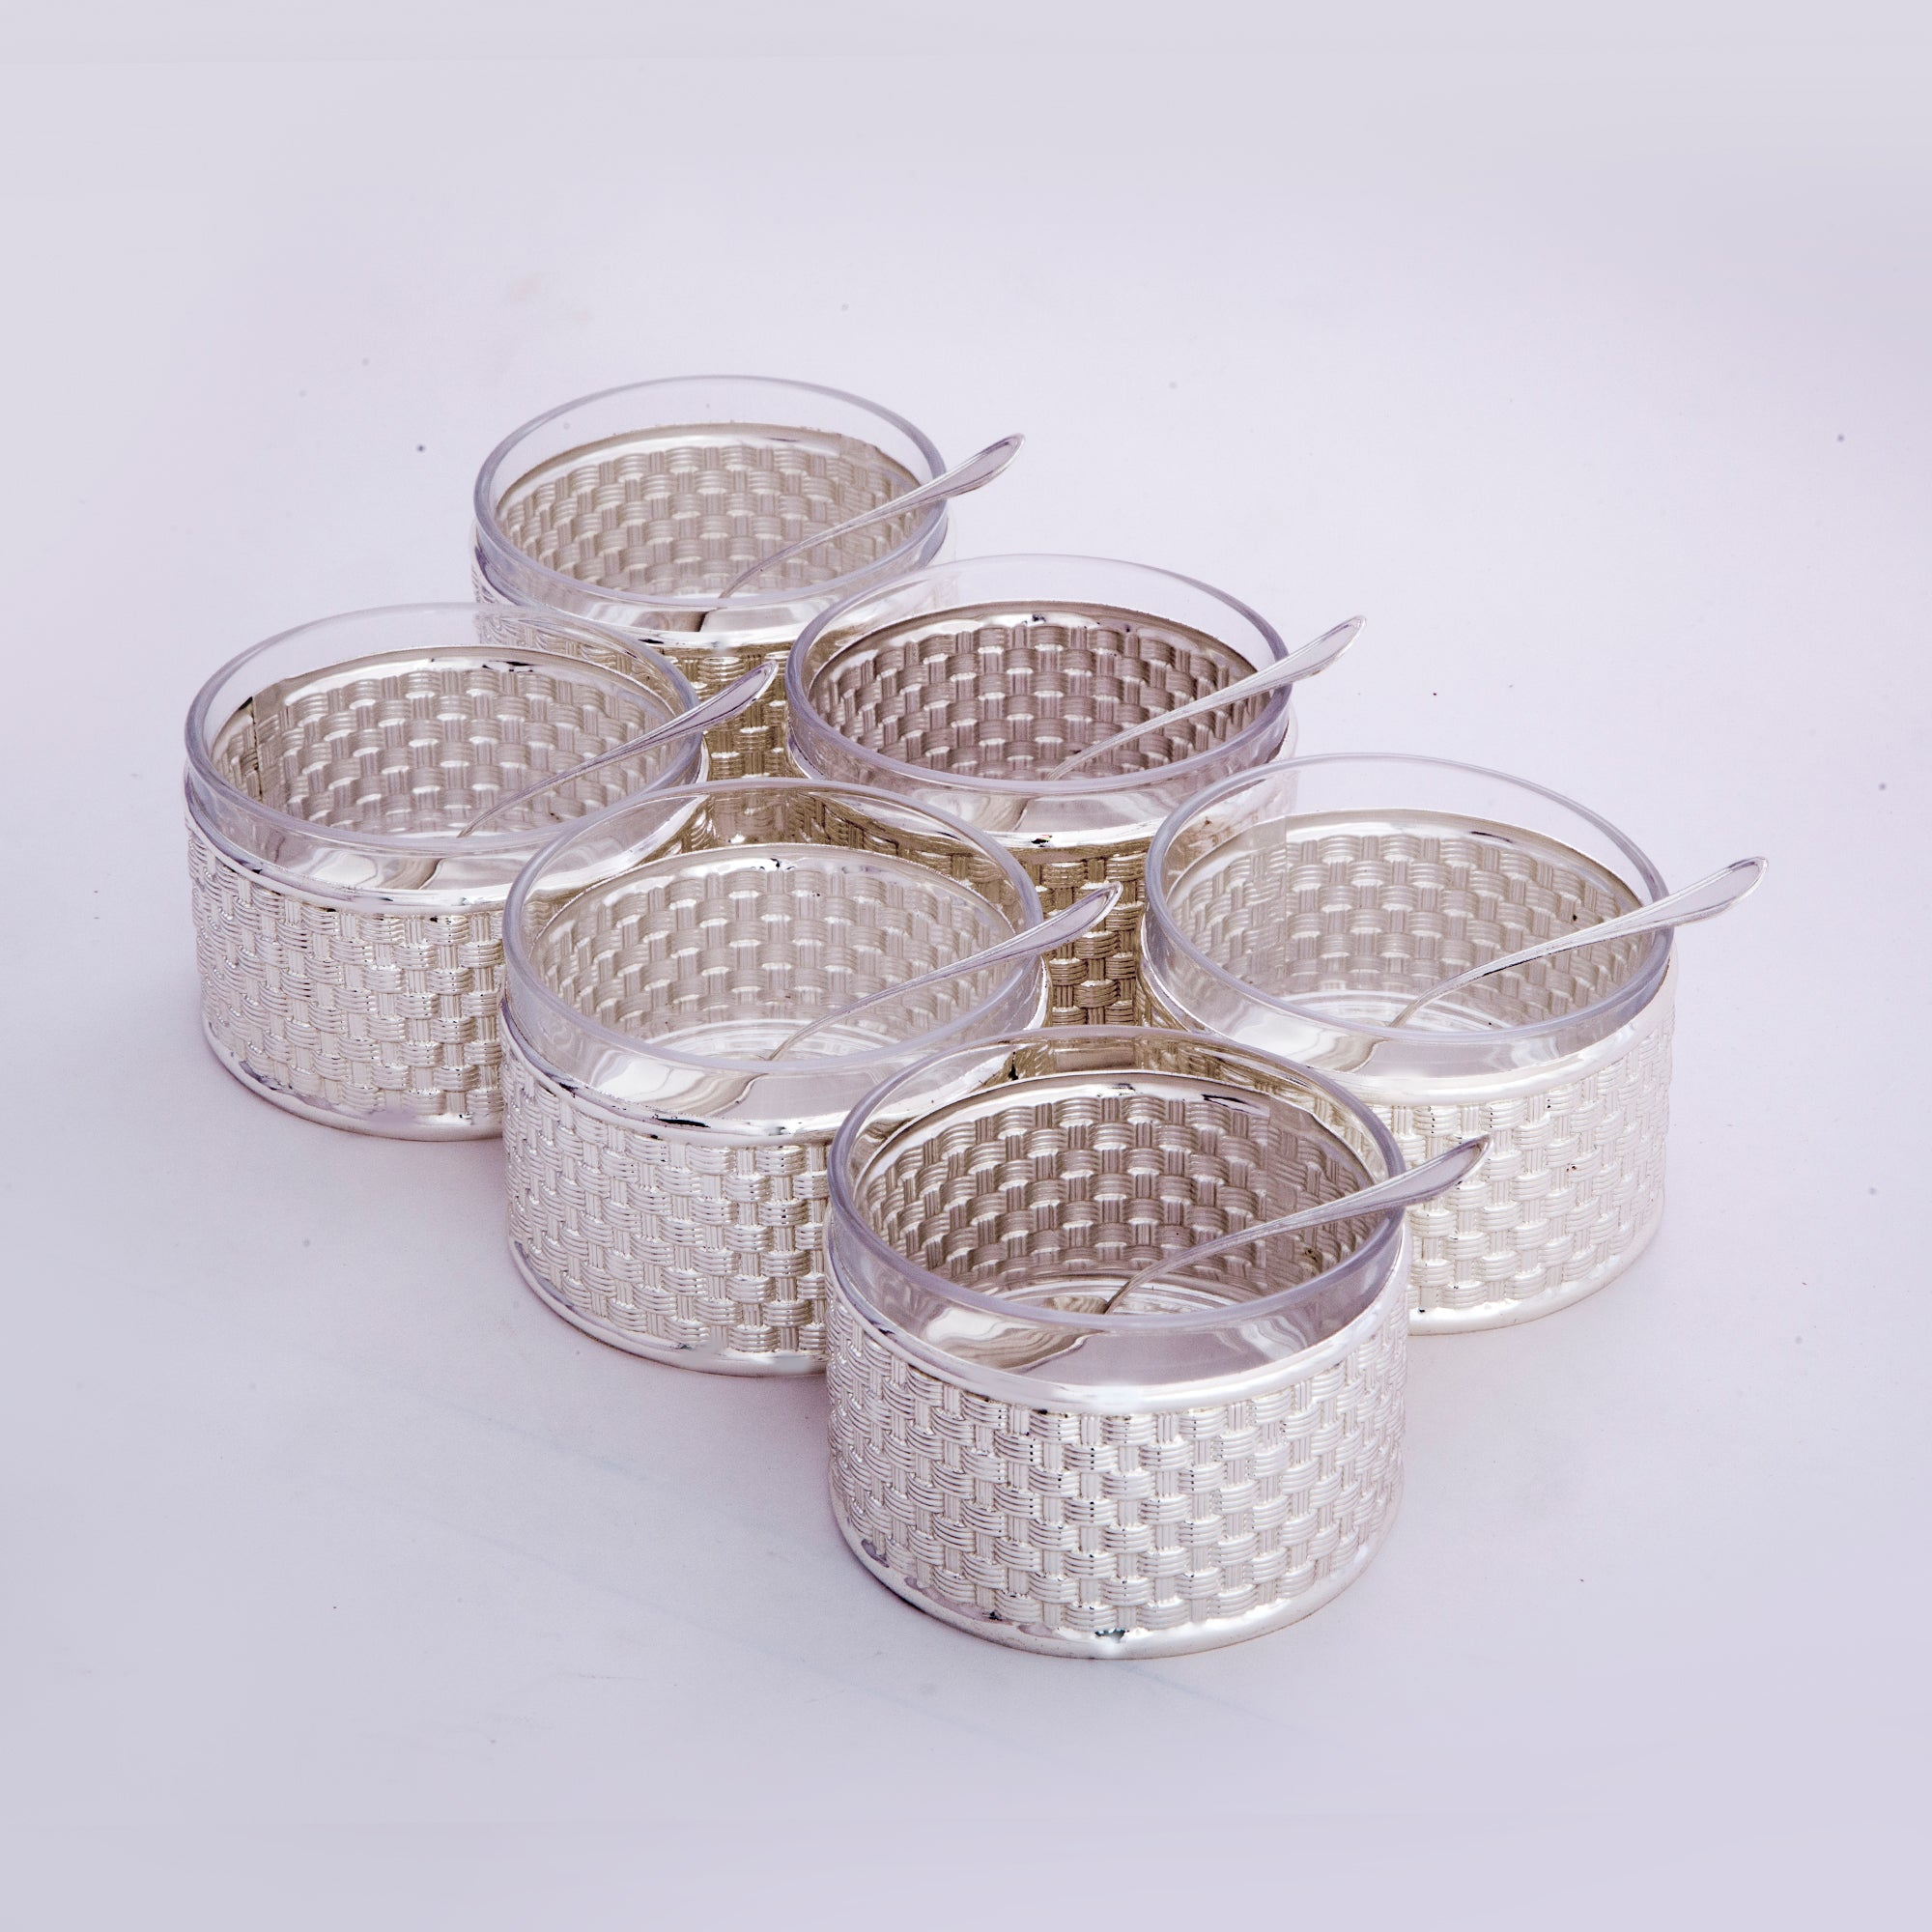 Juice set, 6 glasses, in metal sleeve, with spoon - Barton,Son & Co.